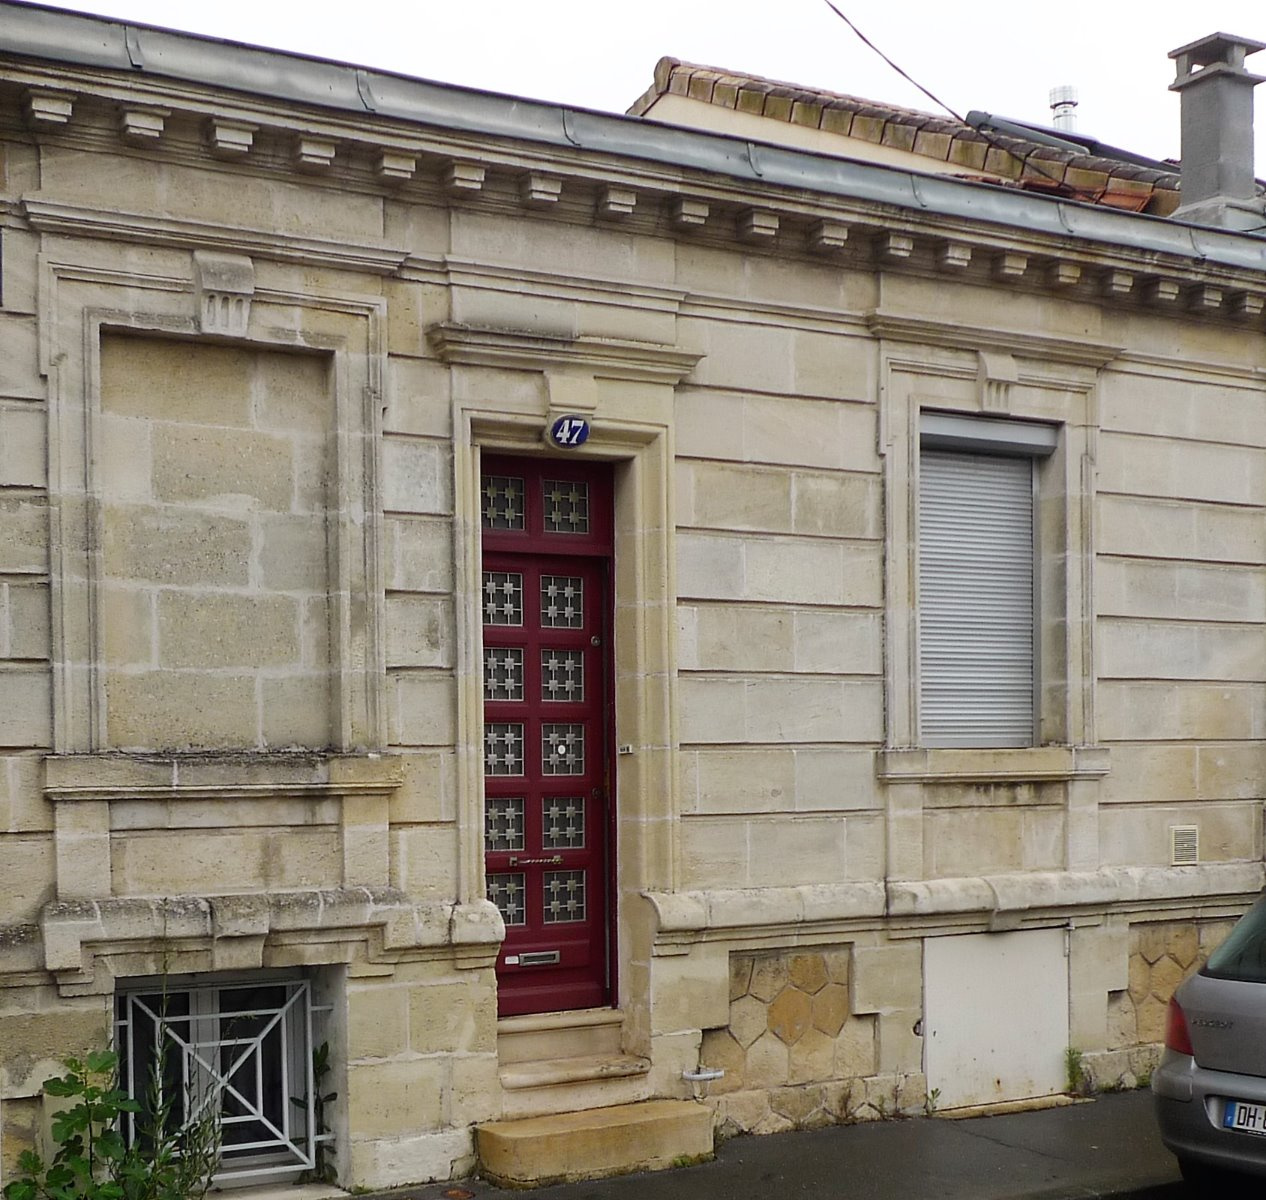 Vente appartements maisons et villas bordeaux saint for Appartement bordeaux fondaudege